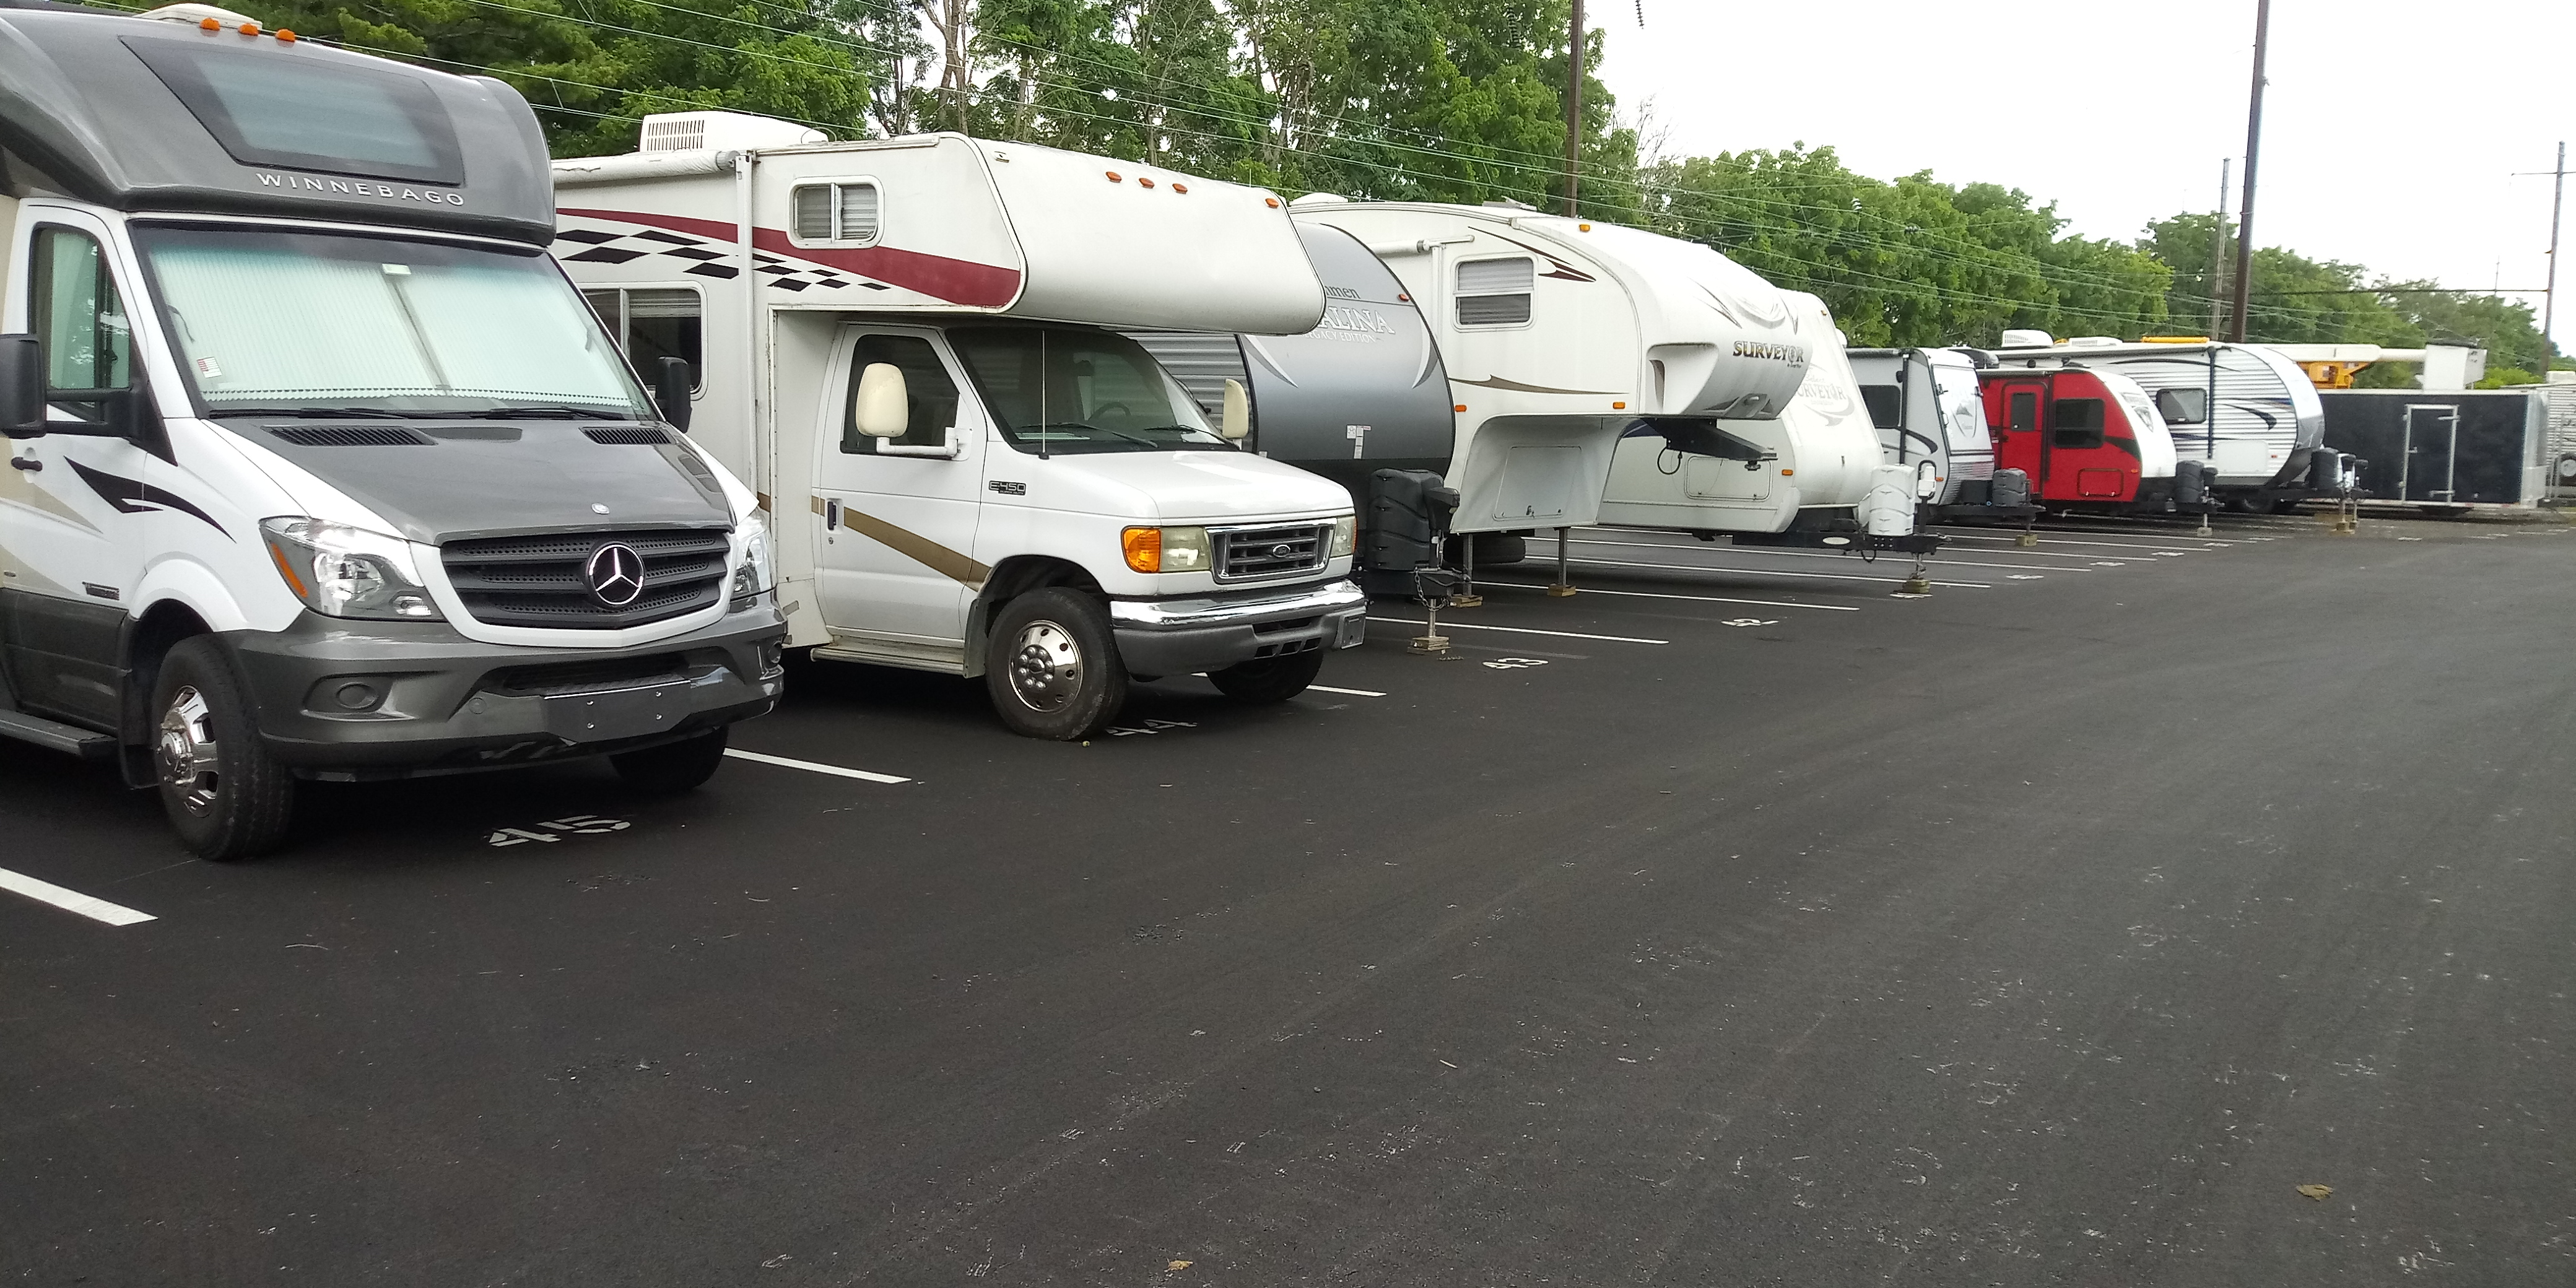 RV and parking space rentals